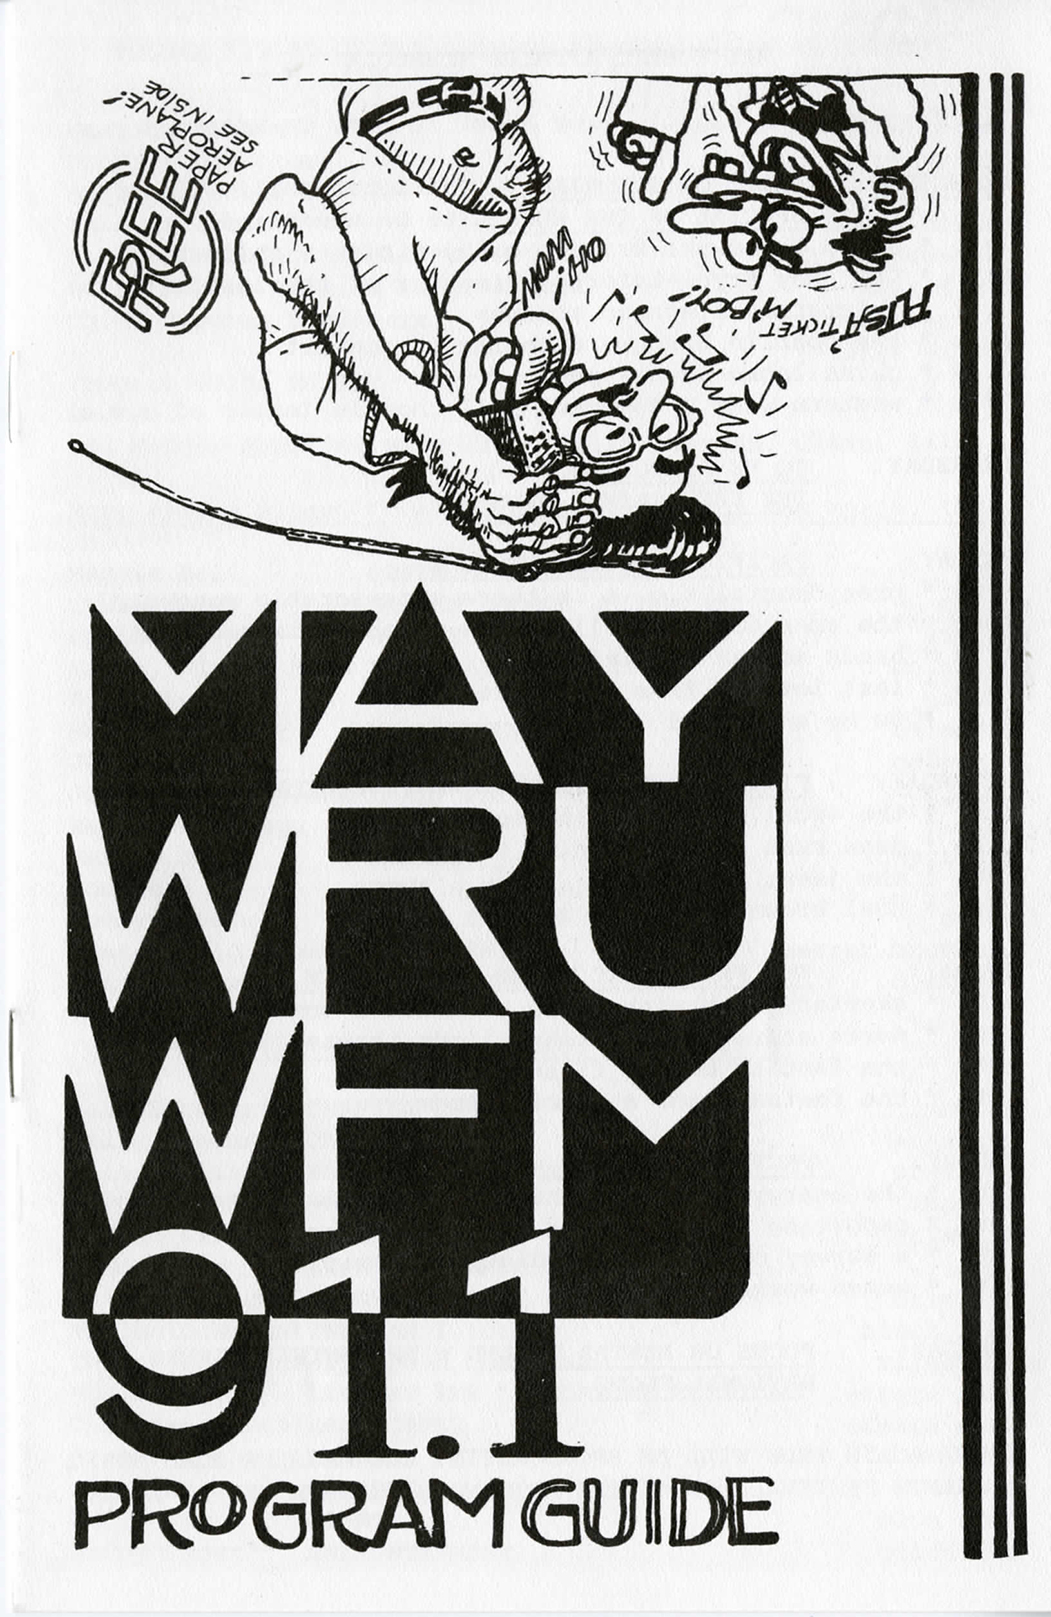 A black and white image of the WRUW Programming Guide from the mid 1970s depicting cartoon images of people with a transistor radio.